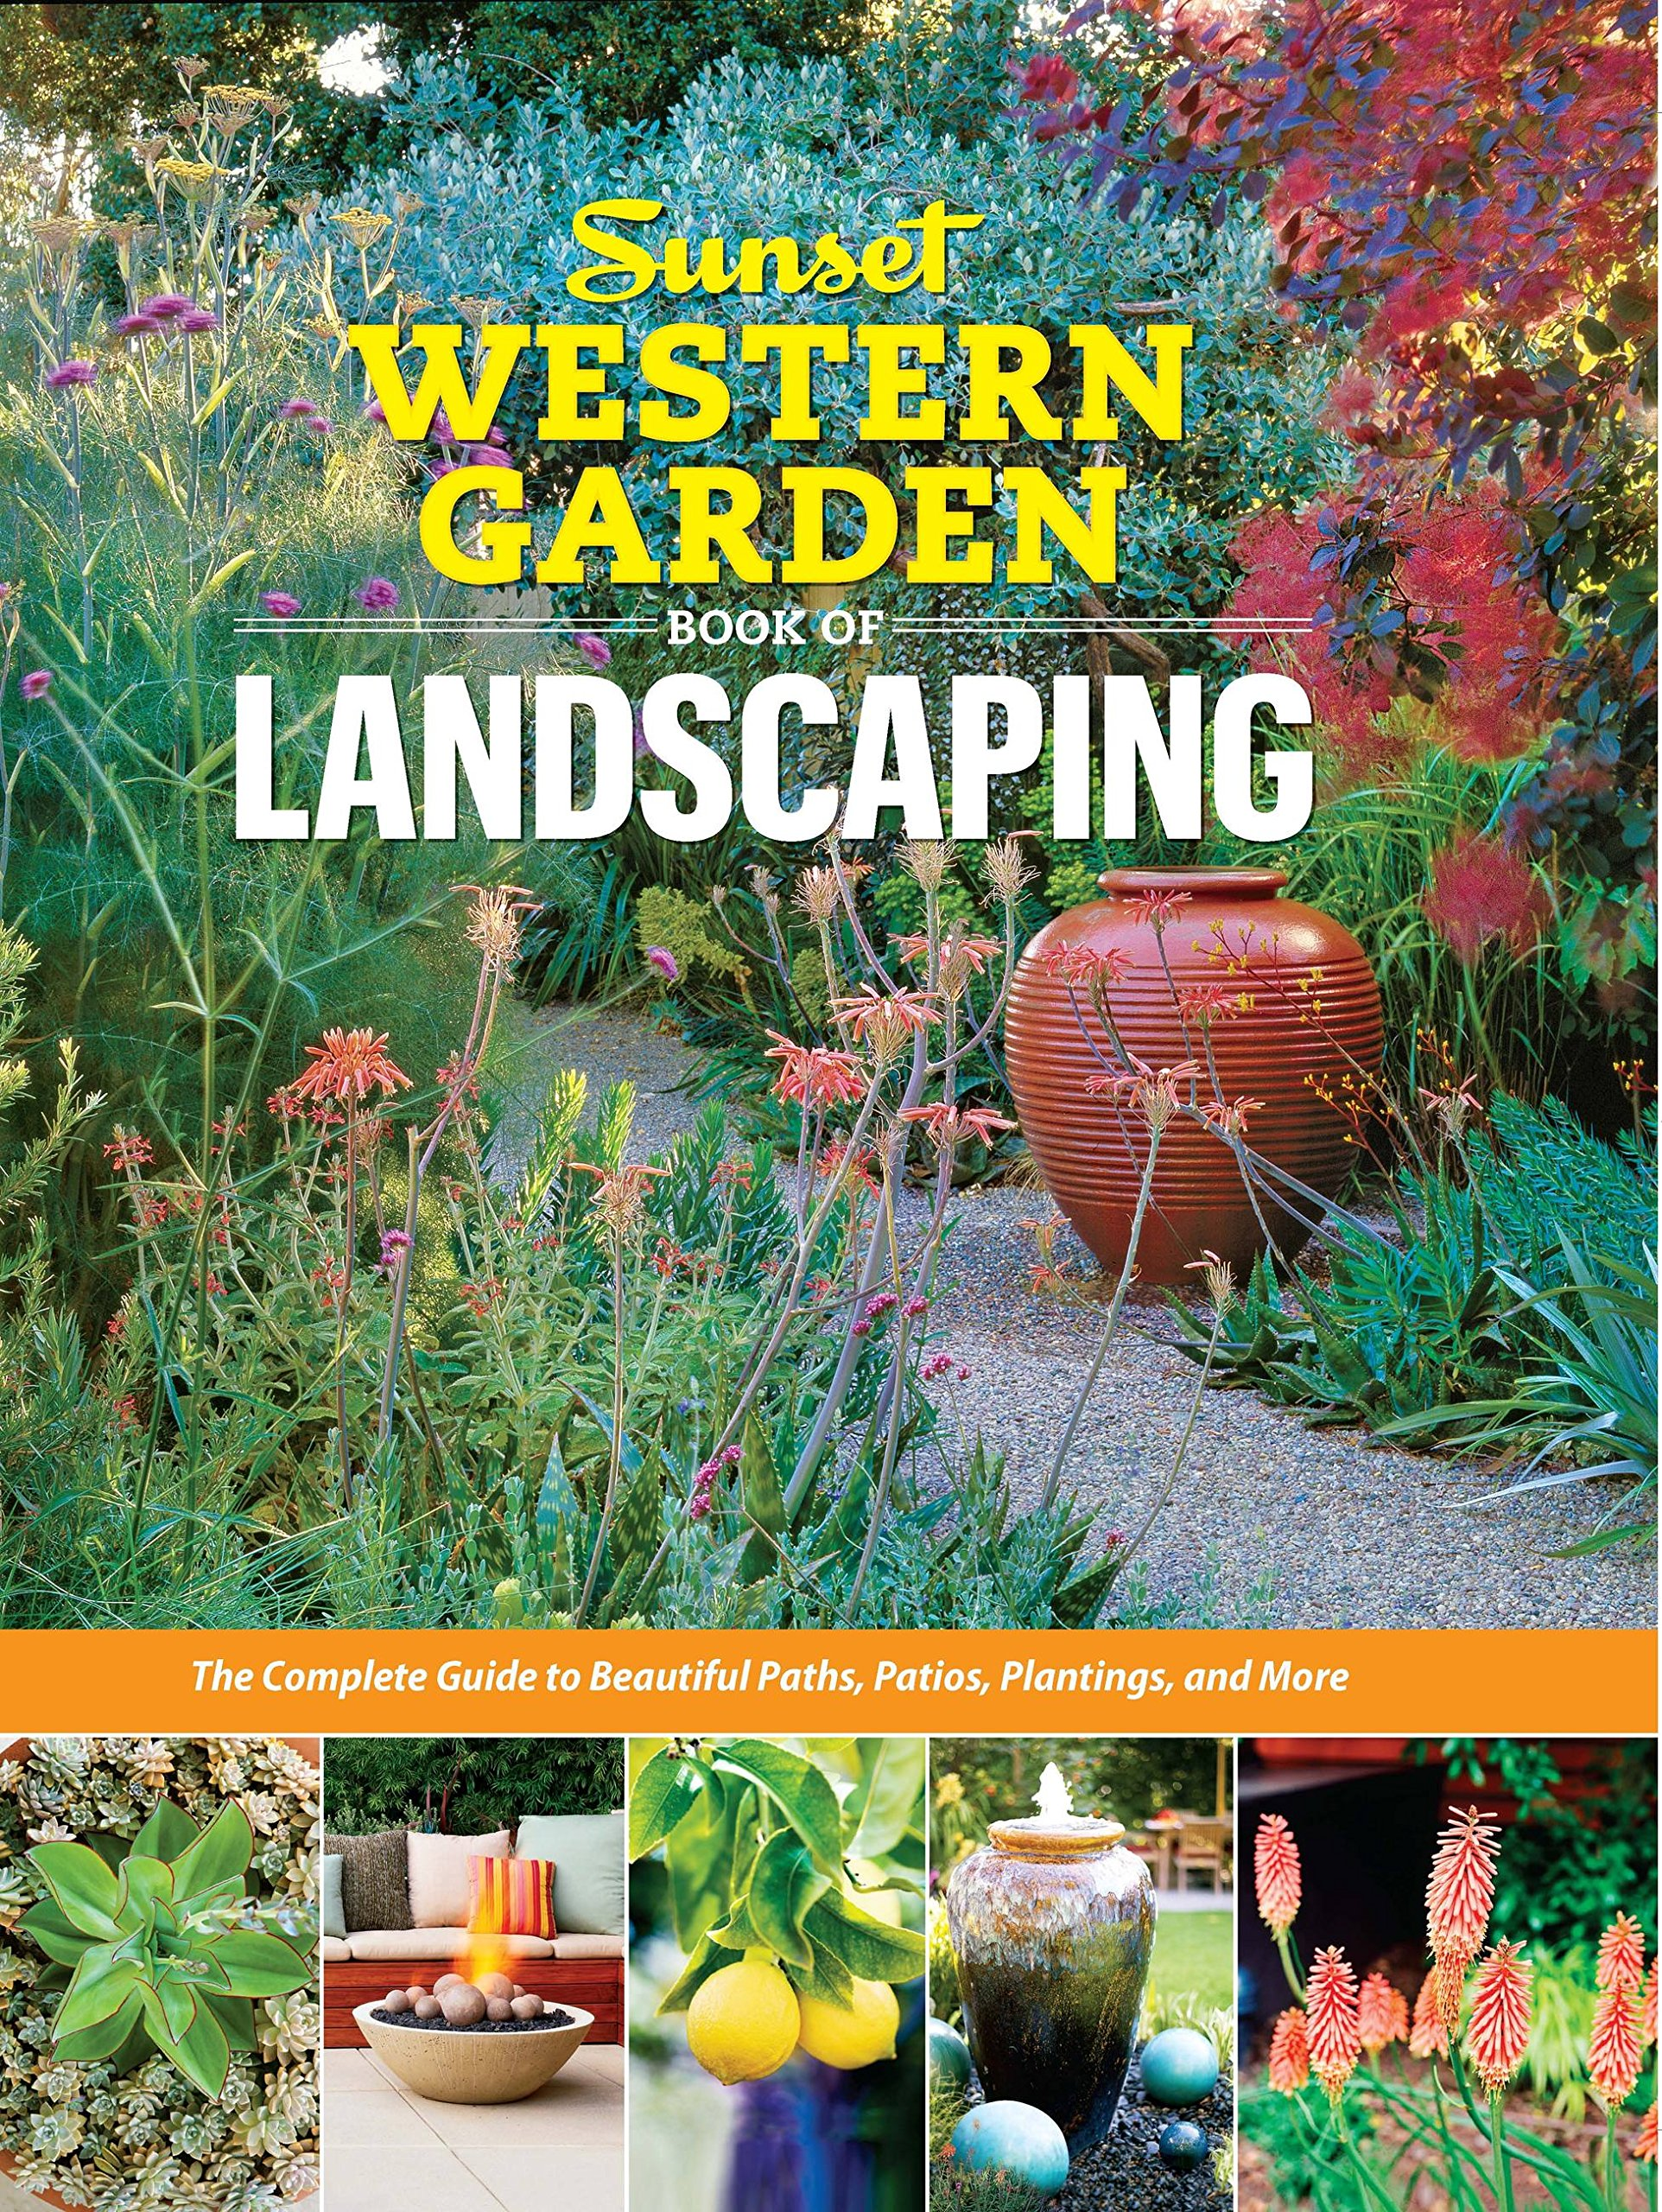 Sunset Western Garden Book of Landscaping: The Complete Guide to Beautiful Paths, Patios, Plantings, and More (Sunset Western Garden Book (Paper))